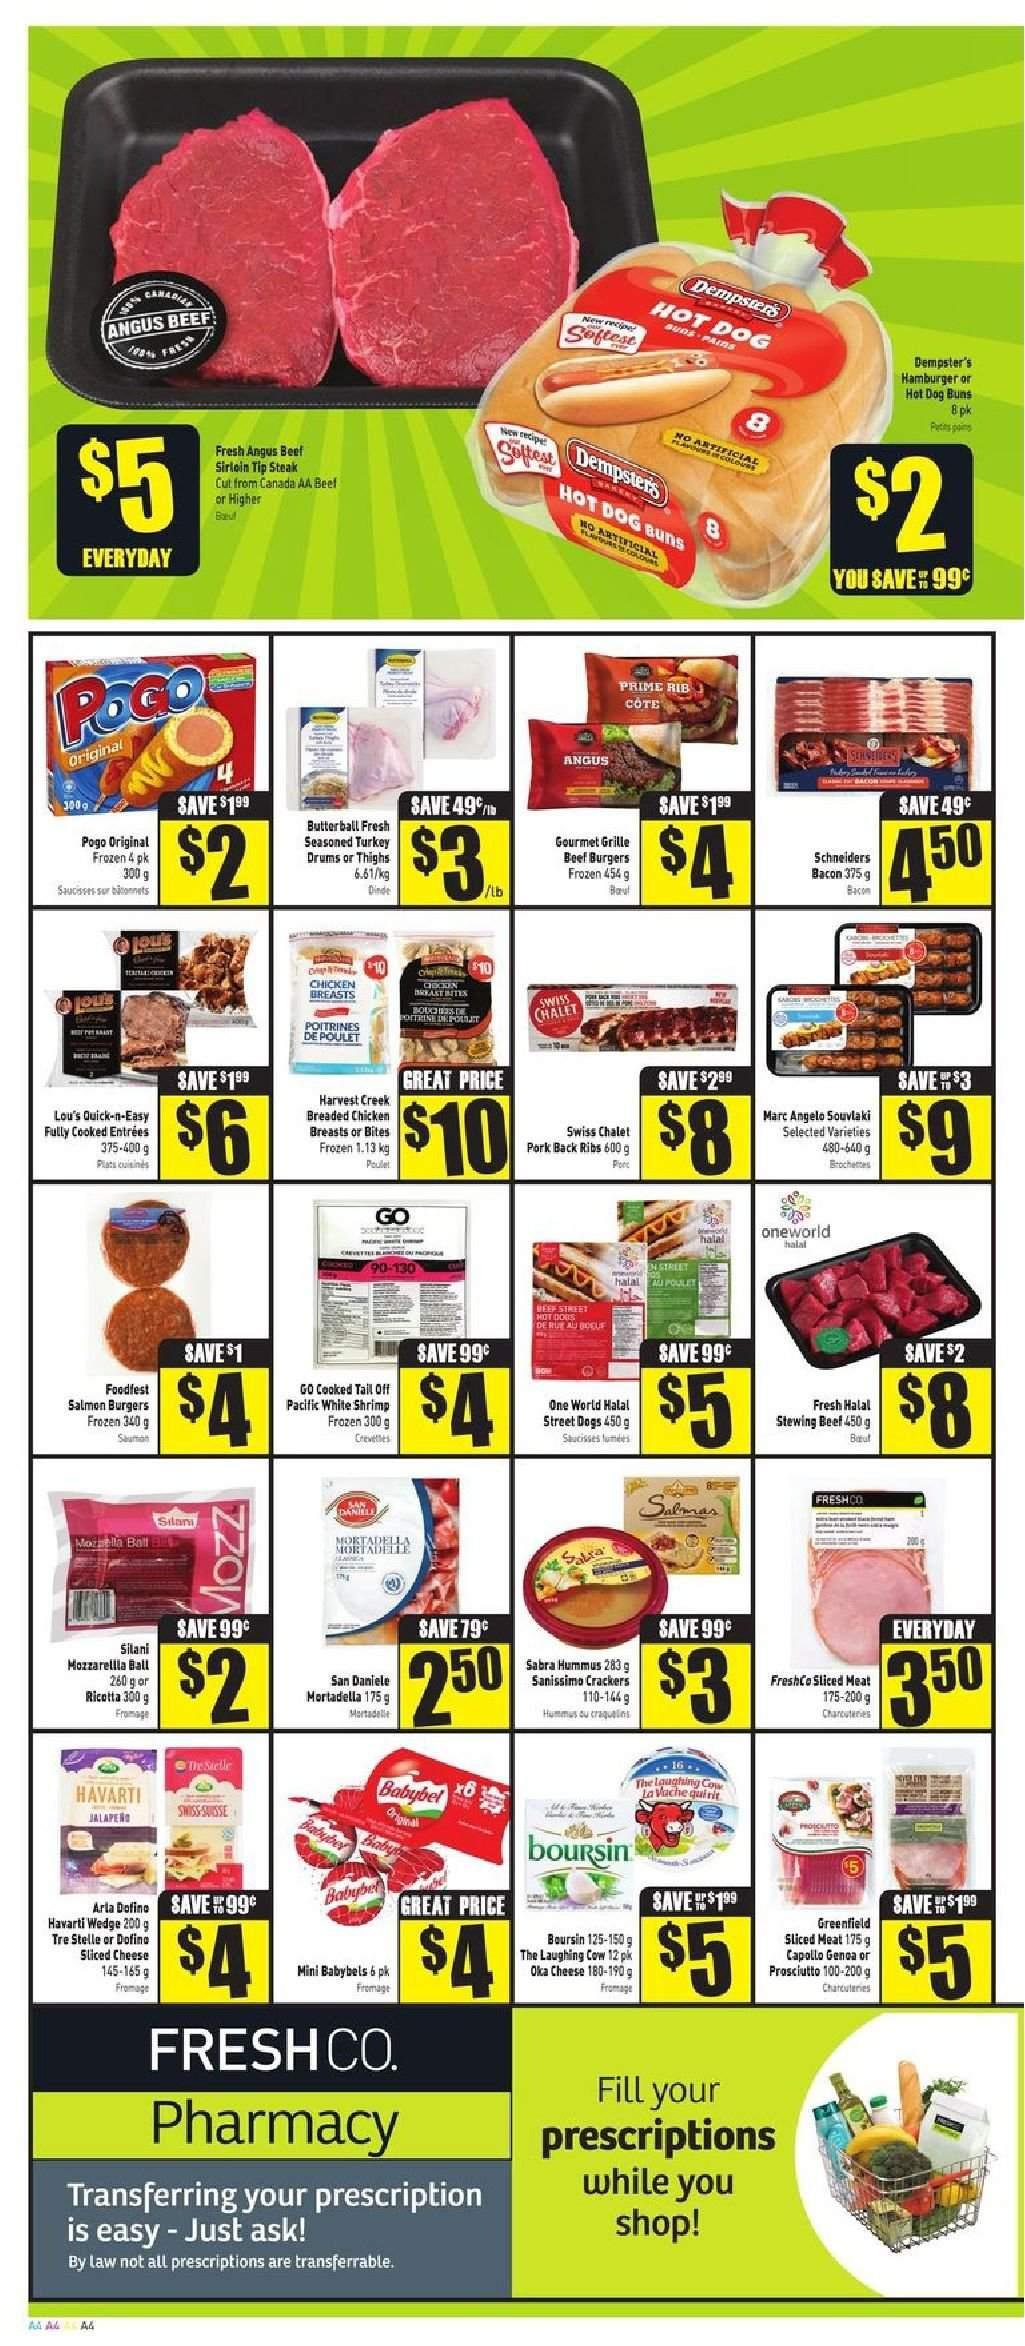 FreshCo. Flyer  - August 02, 2018 - August 08, 2018. Page 4.